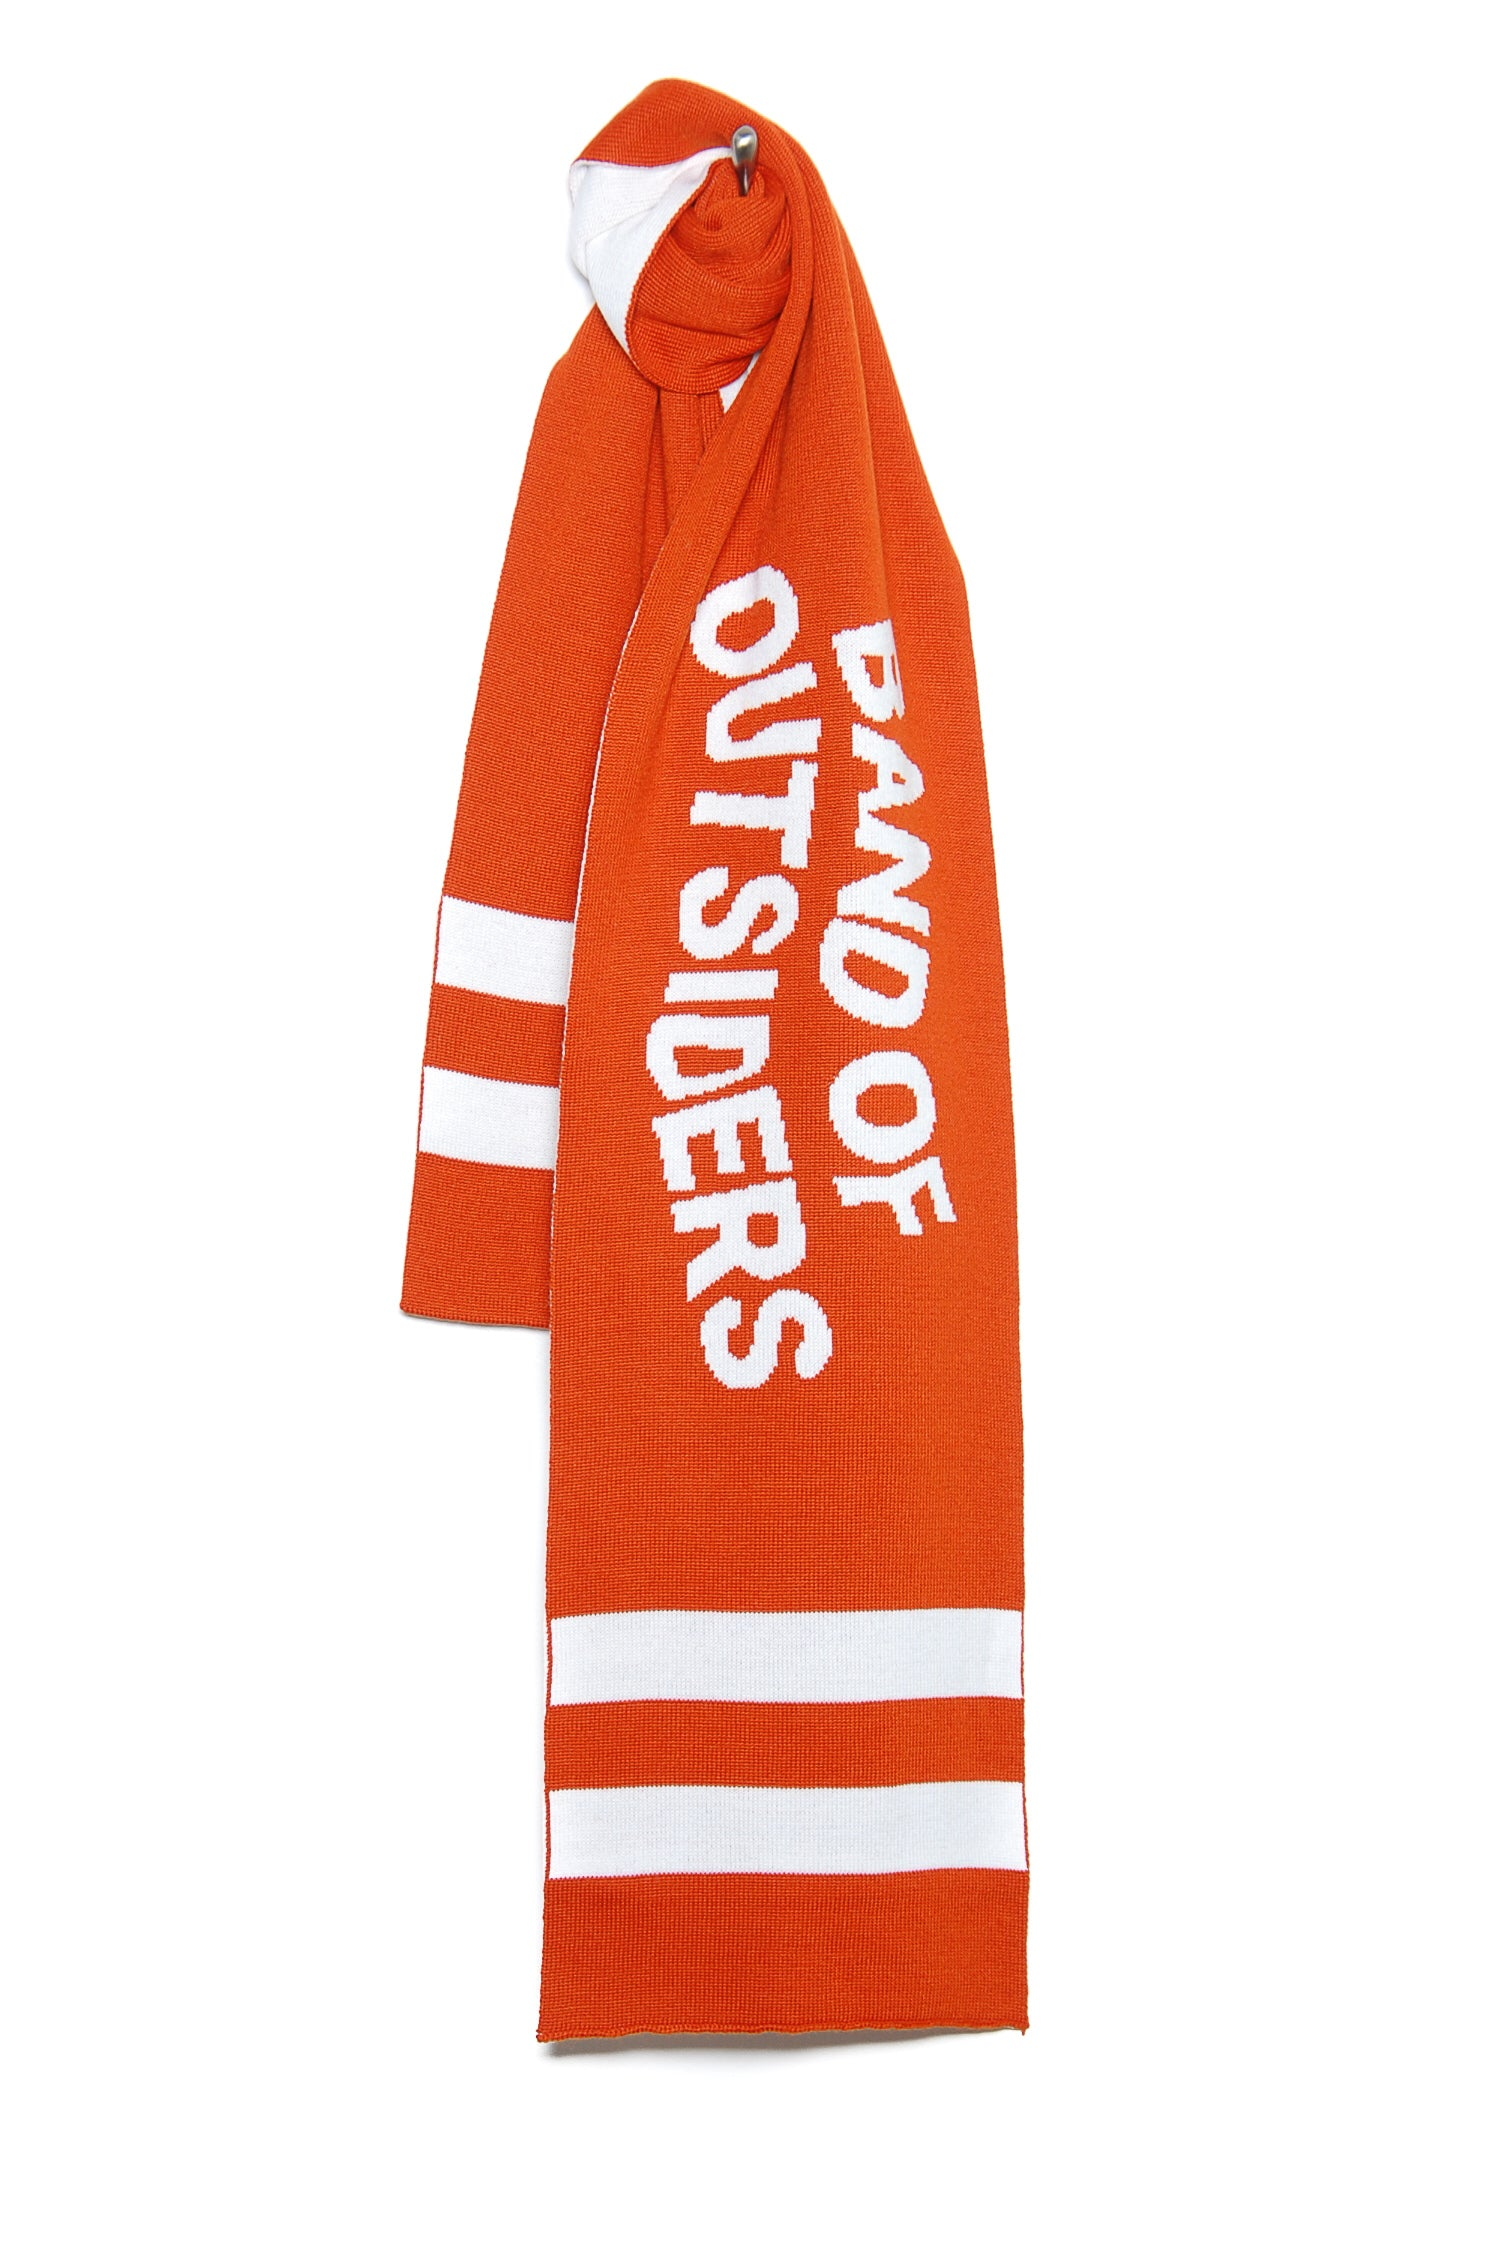 Band of Outsiders Band Scarf W/Stripe Detail KW14 CK110 5302 spicy orange